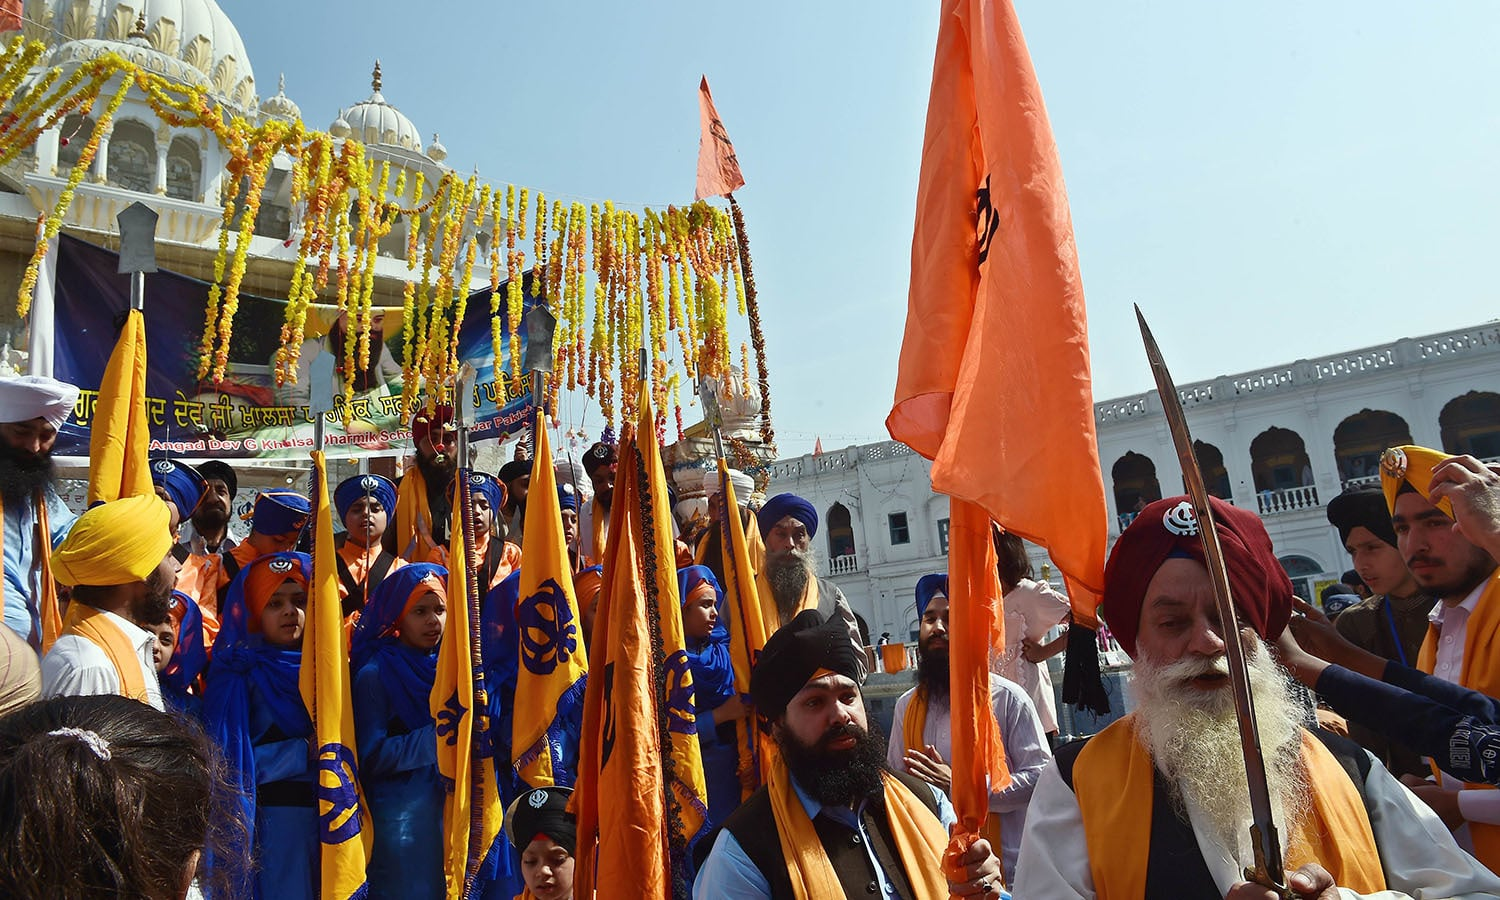 Priests march at the Gurdwara Panja Sahib, one of Sikhism's most holy places.— AFP